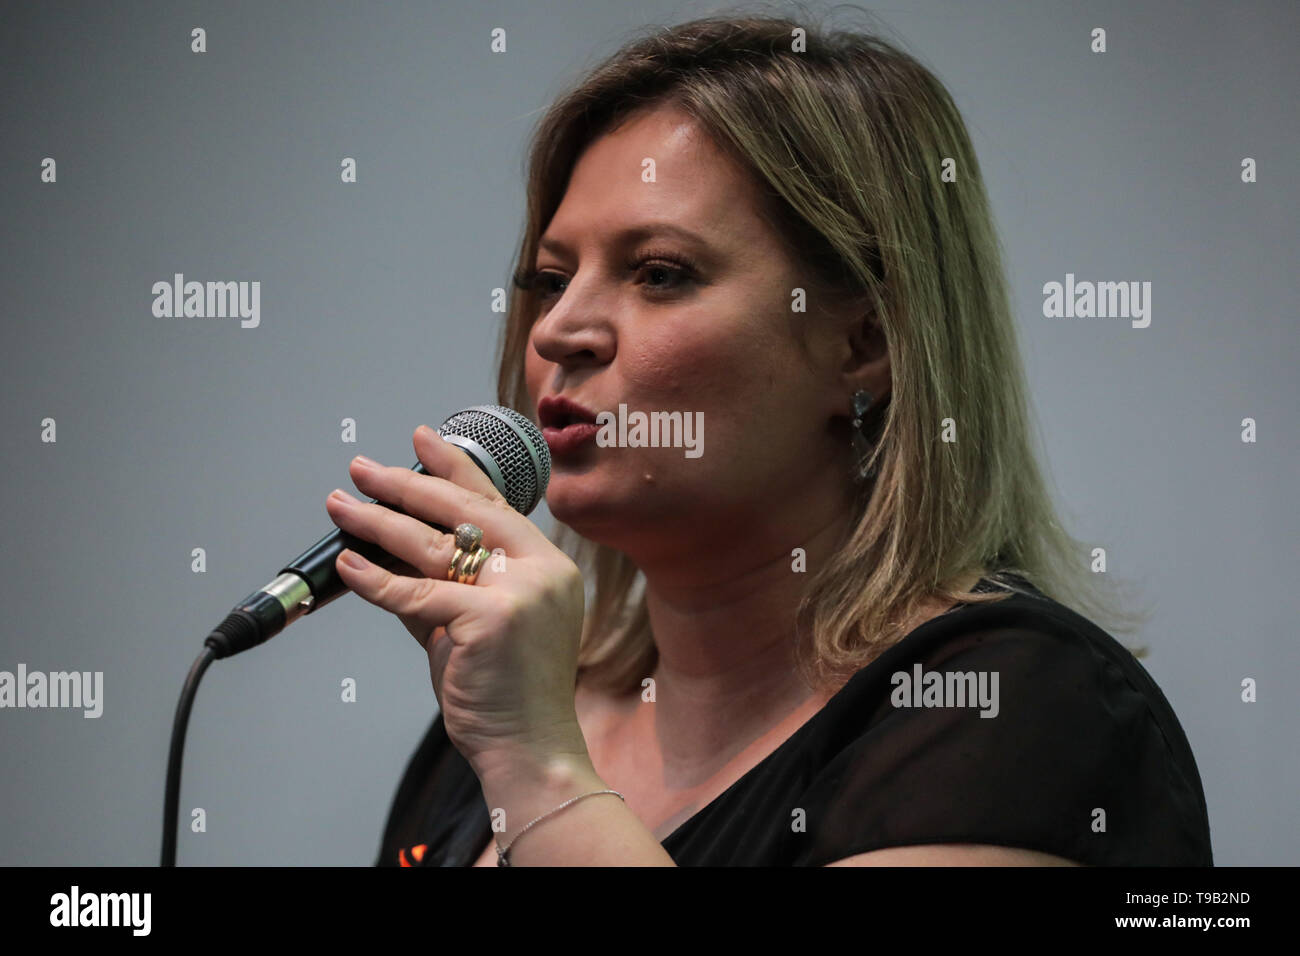 BELÉM, PA - 17.05.2019: JOICE HALSSEMANN EM BELÉM - Joice Halssemann (PSL) was in Belém for the Caravan of Reform (pension) on Friday (17) and spoke with businessmen at FIPA (Industry Fair of the State of Pará) in 2019, Ms. Éder Mauro (PSD) accompanied the meeting. (Photo: Filipe Bispo/Fotoarena) - Stock Image